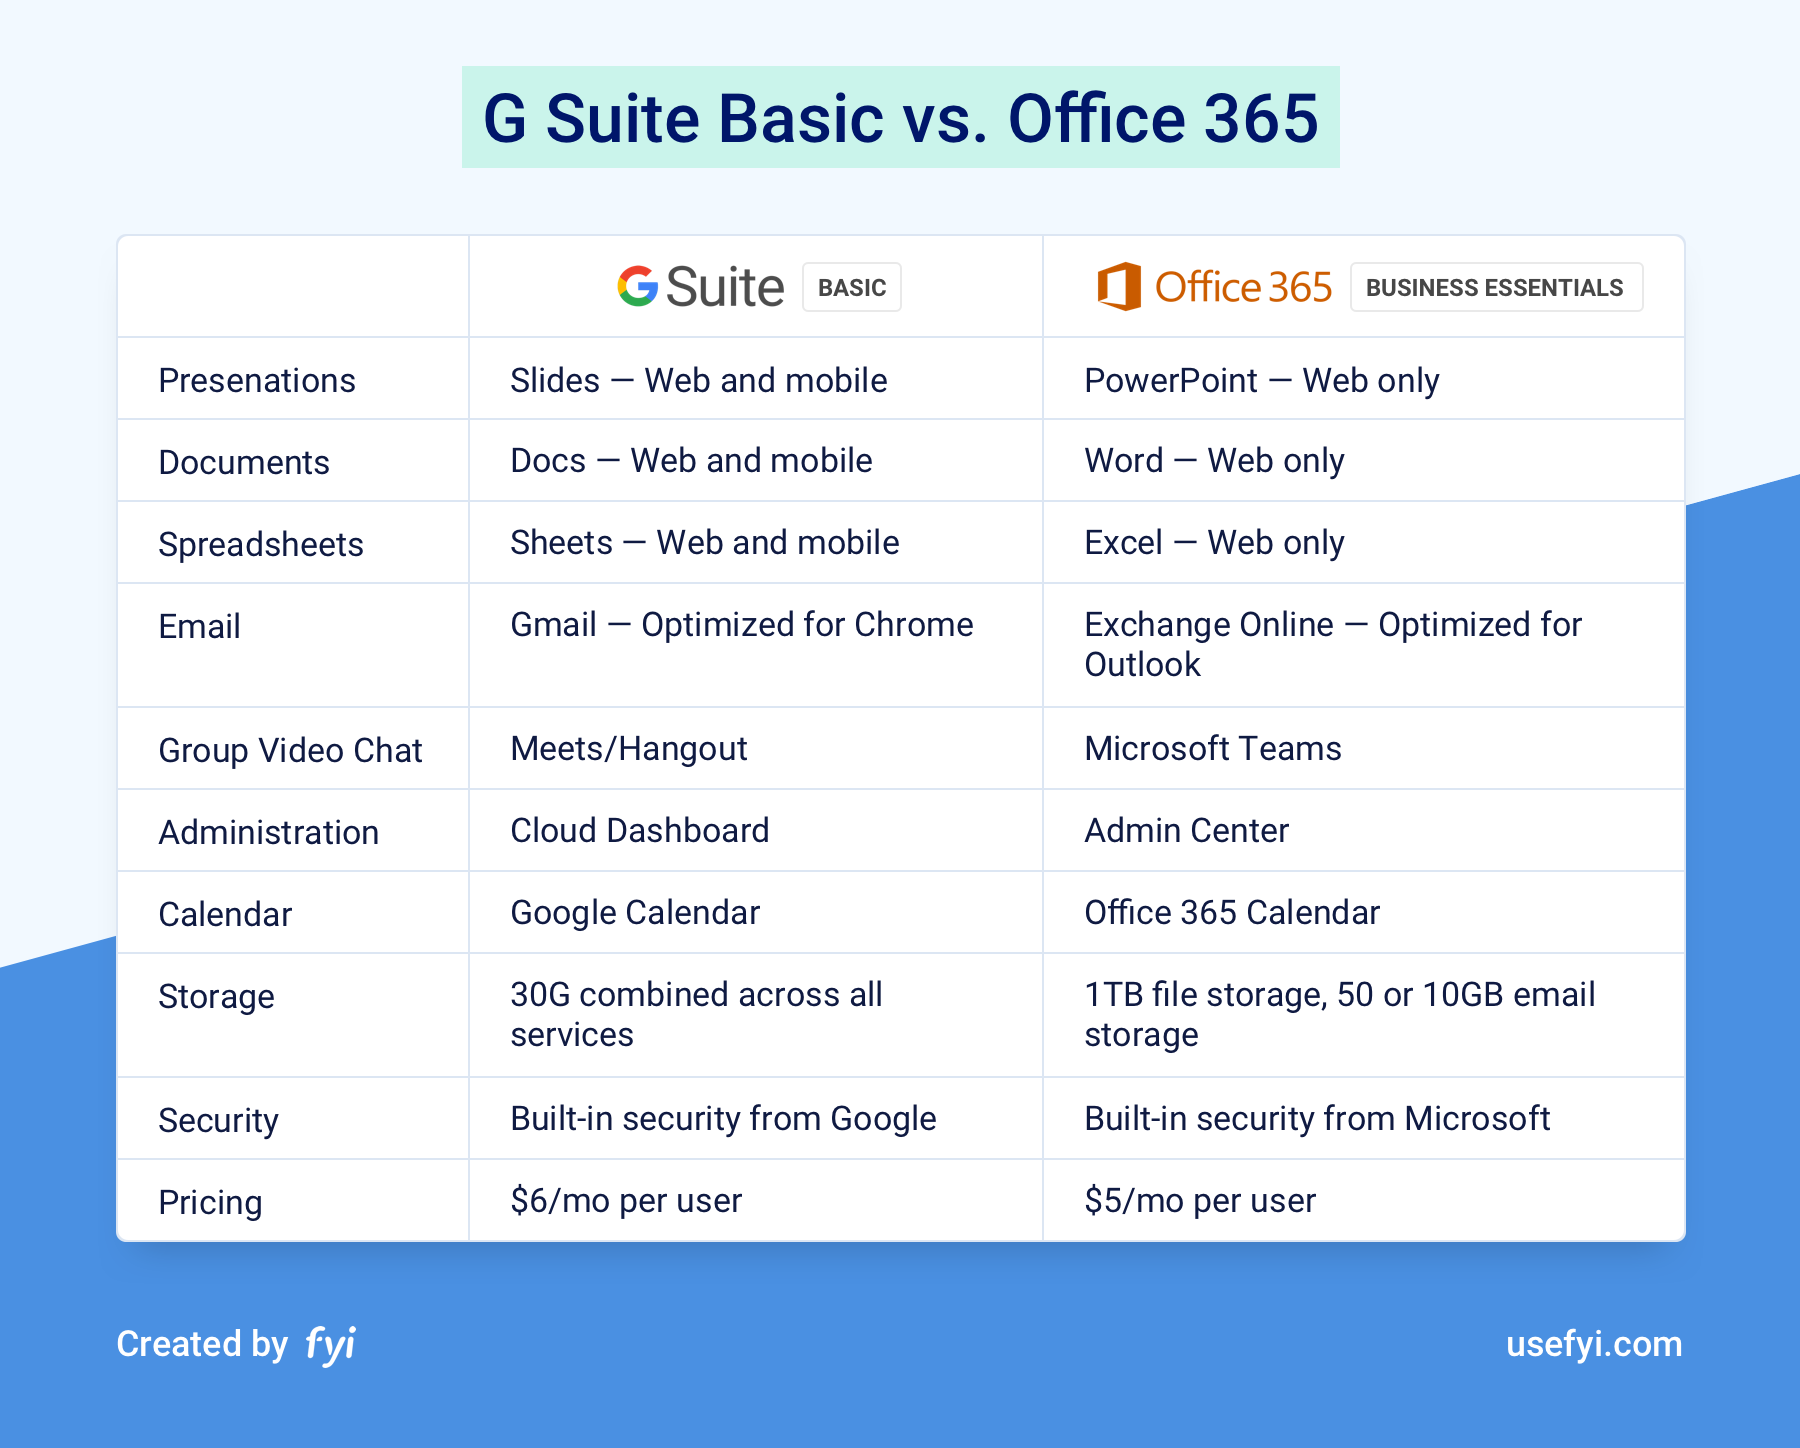 G Suite Basic vs Office 365 Business Essentials